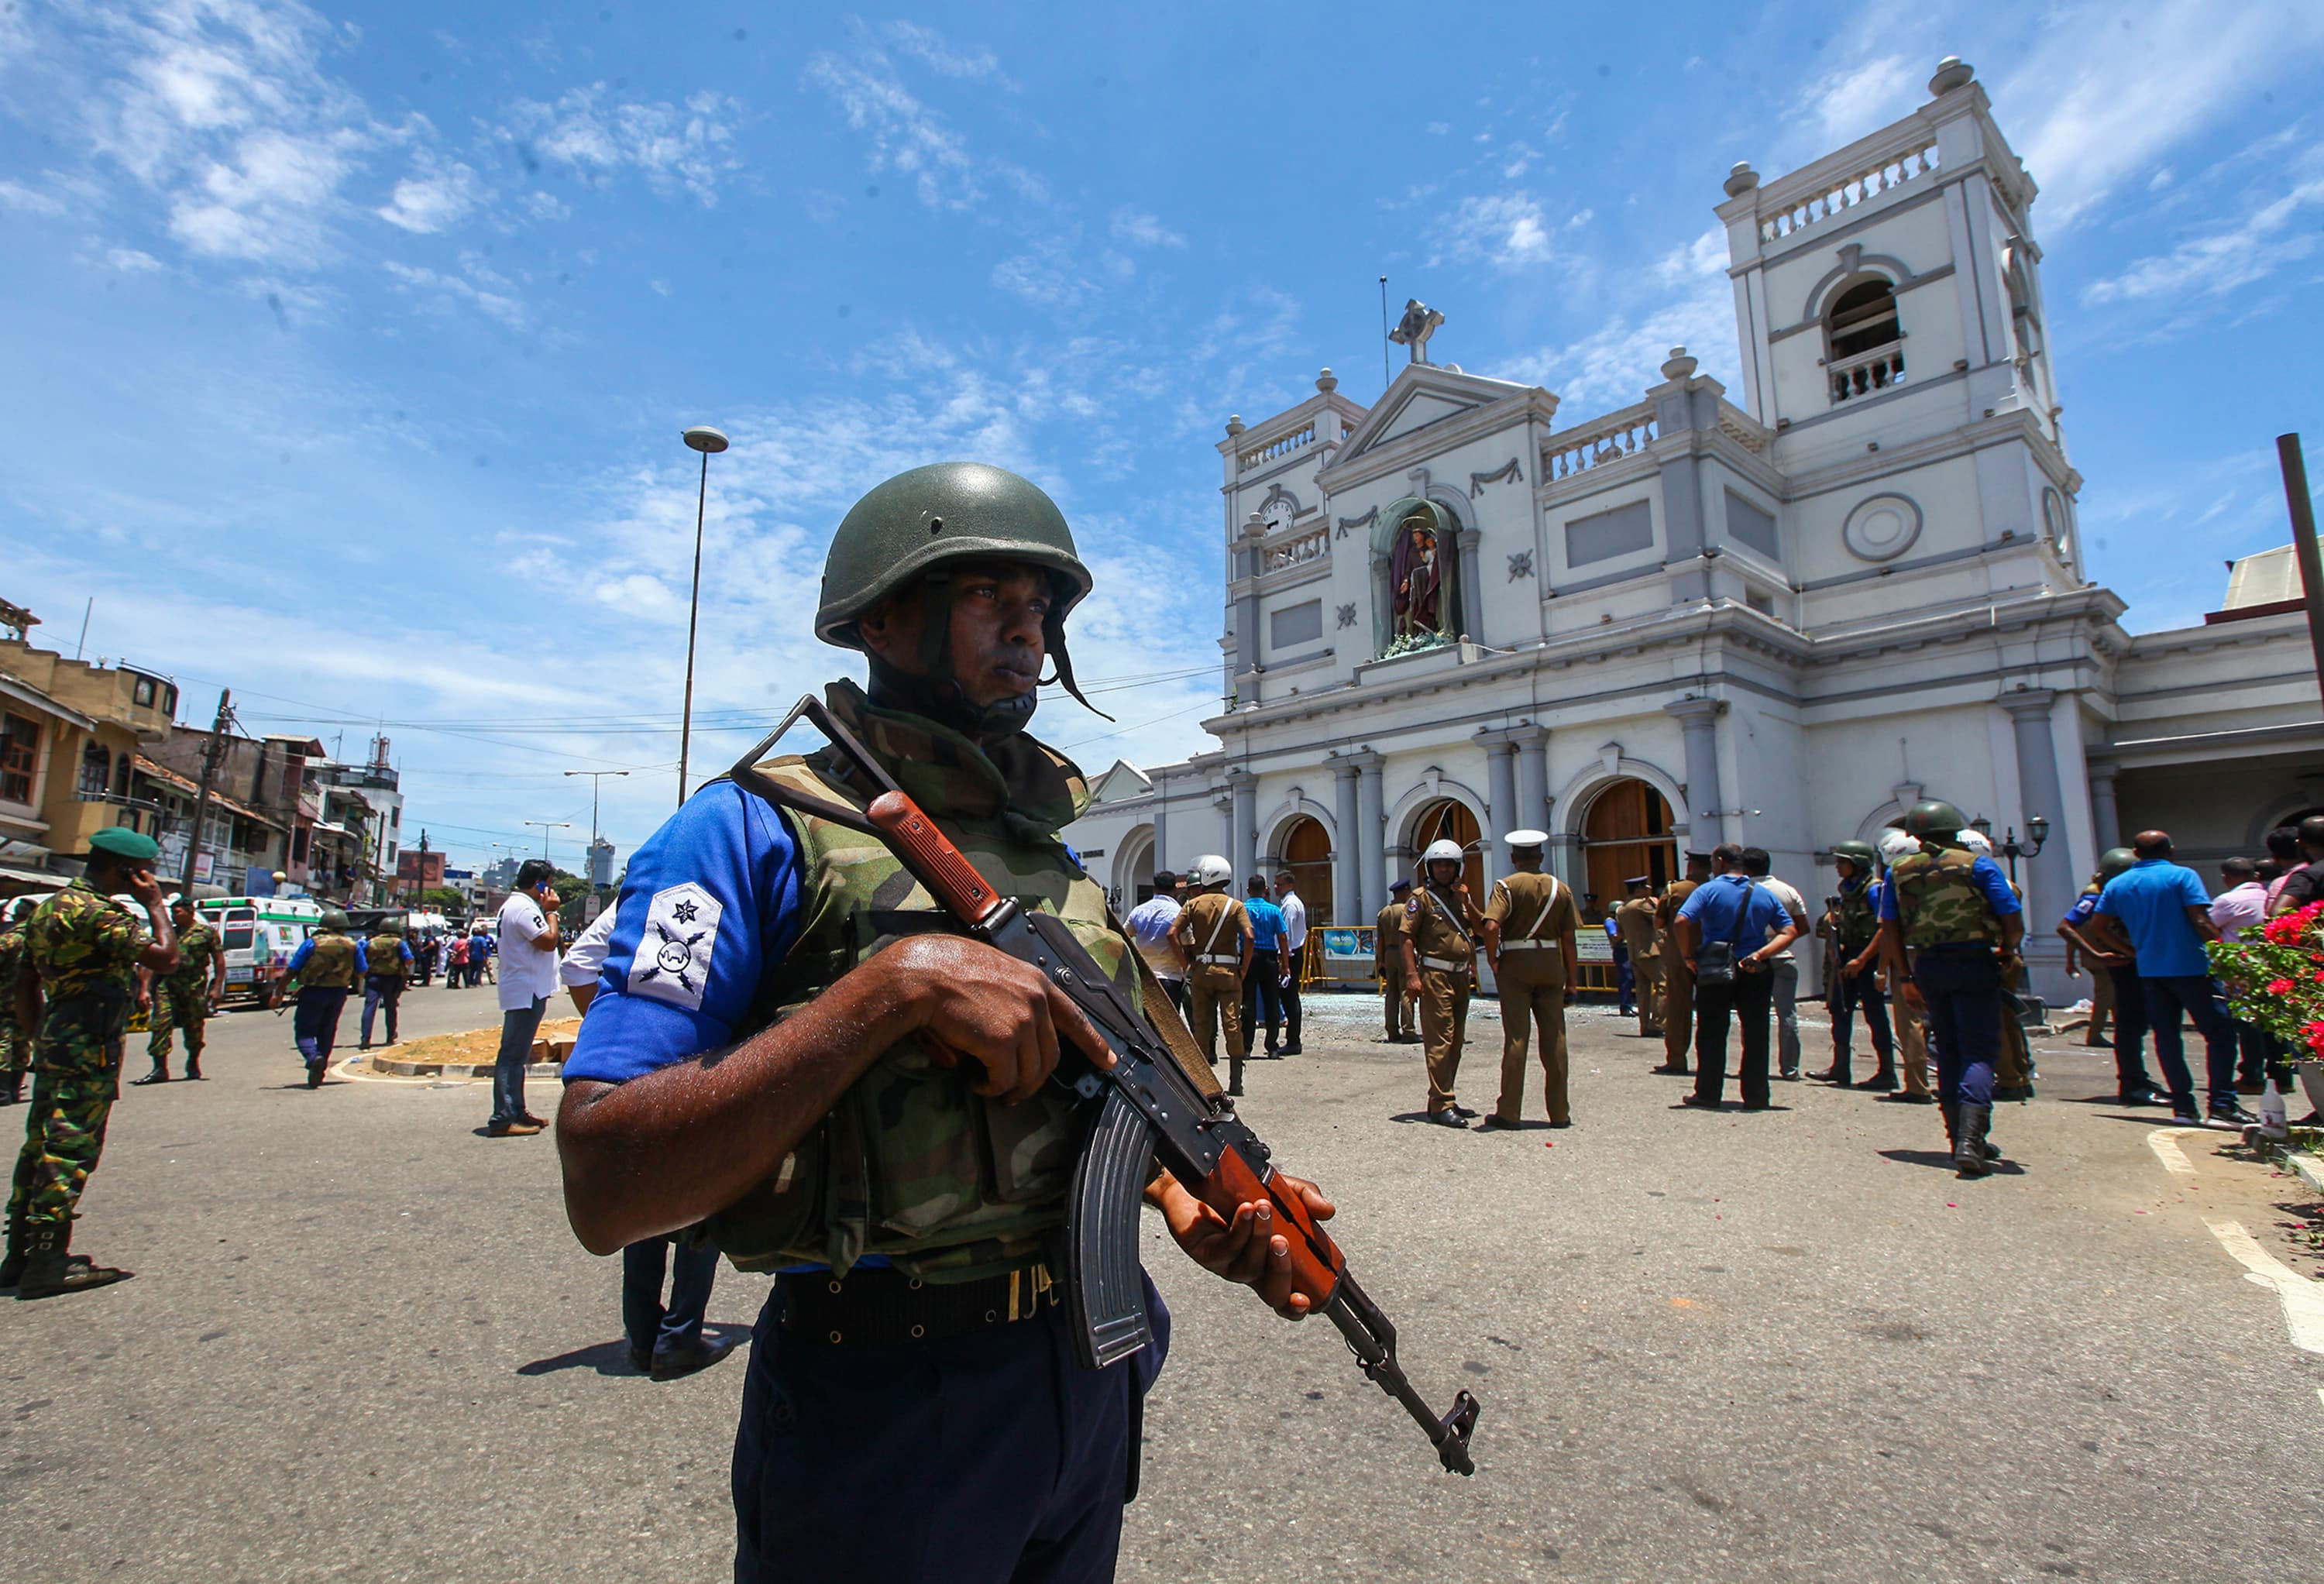 Death toll from Sri Lanka attacks rises to 290 and about 500 wounded, police say